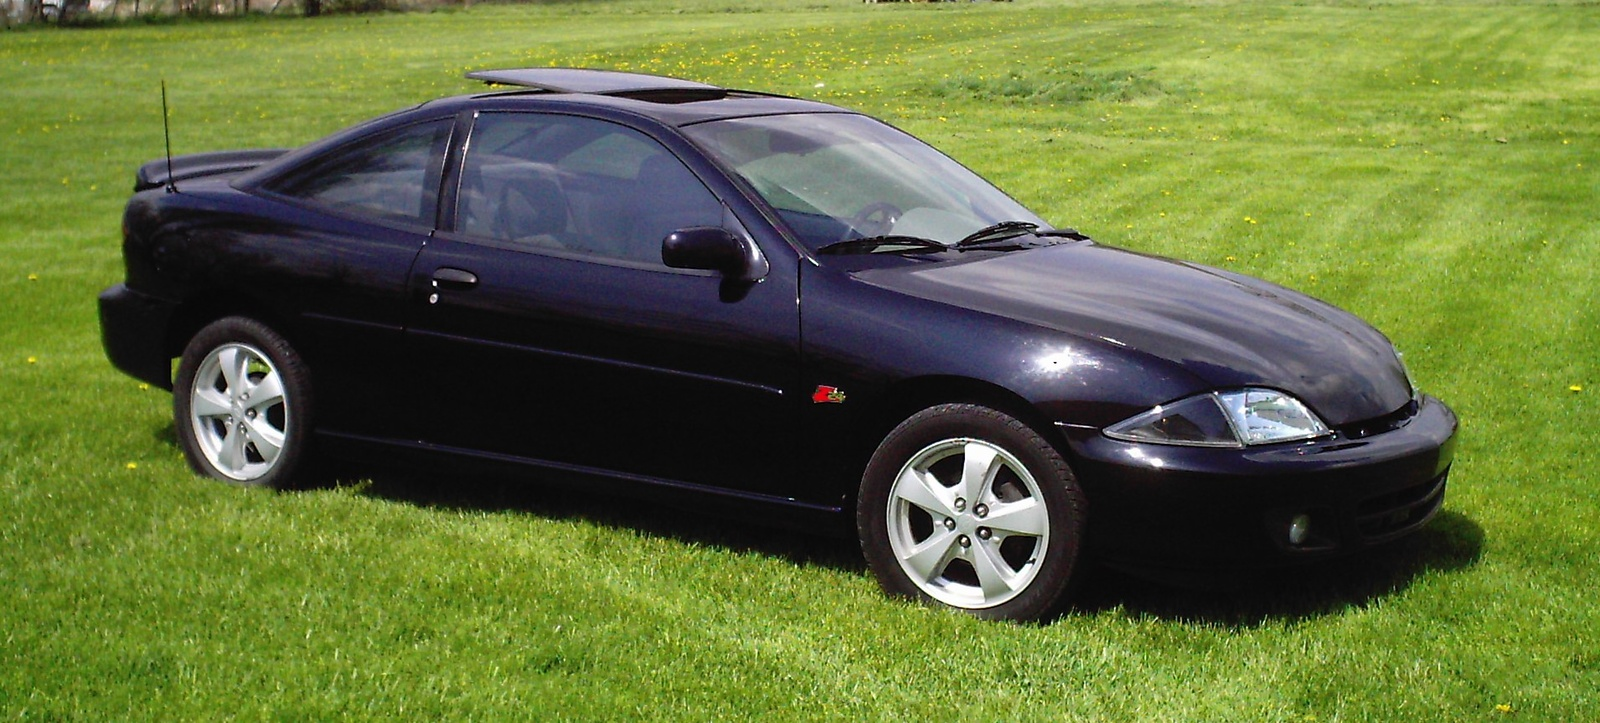 Chevy cavalier coupe submited images pic2fly